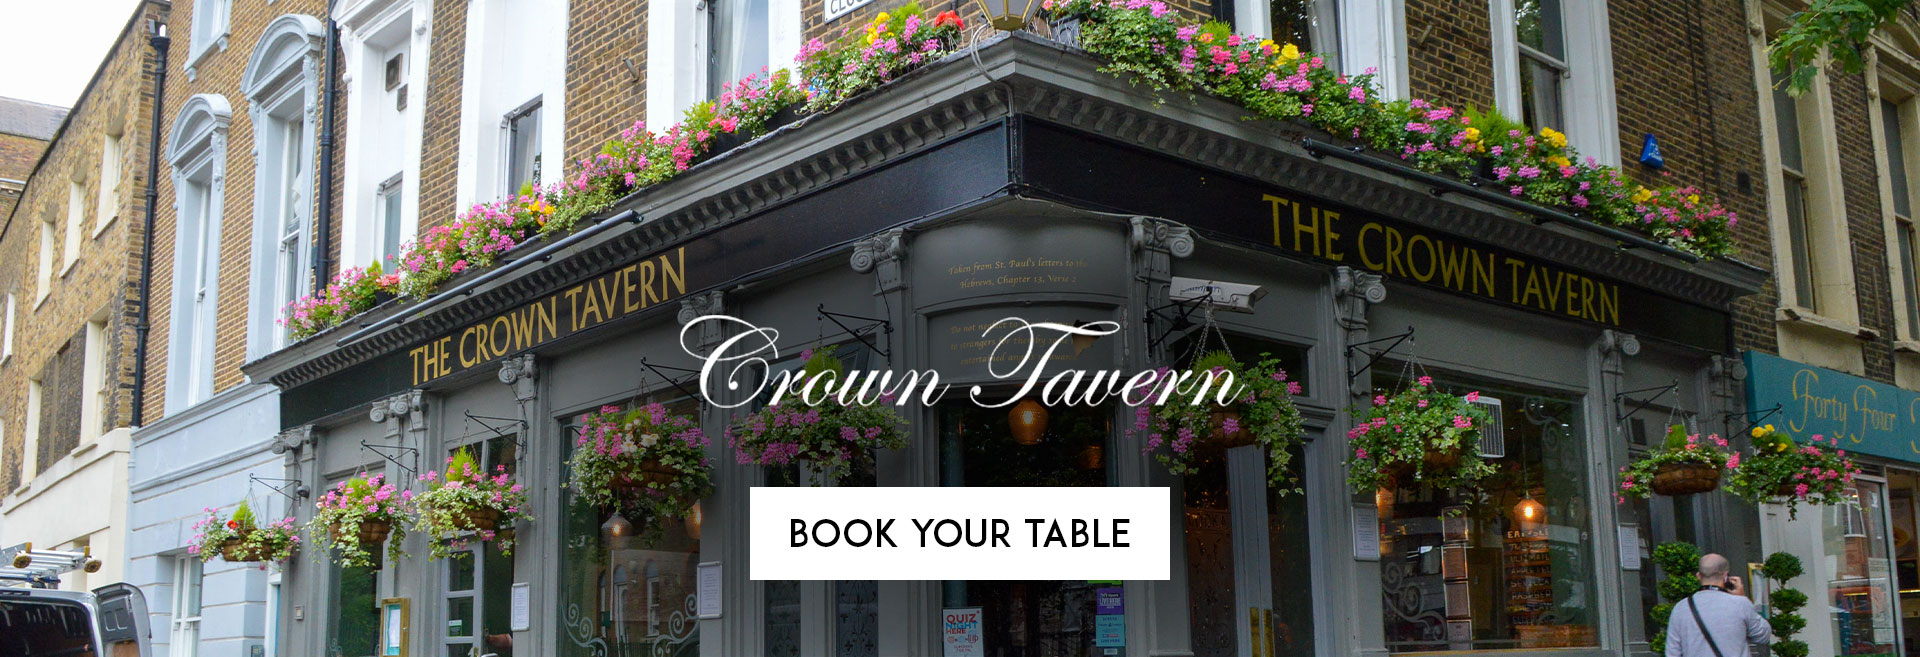 Book Your Table The Crown Tavern